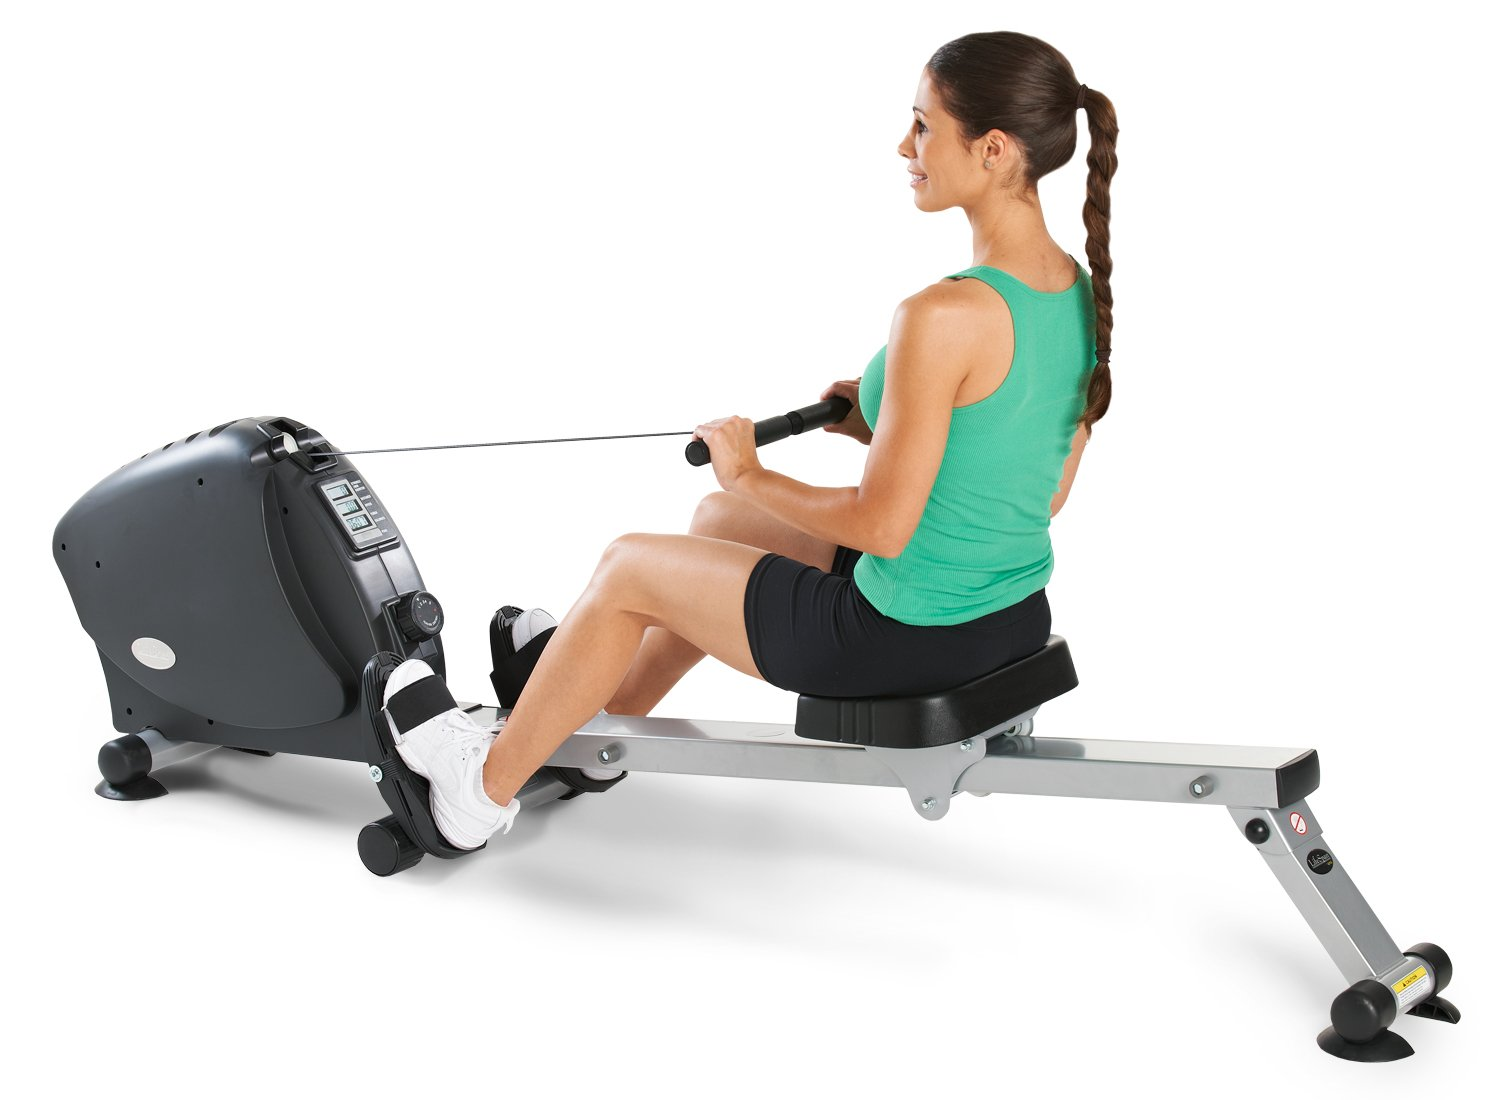 Lifespan Fitness R1000 Review